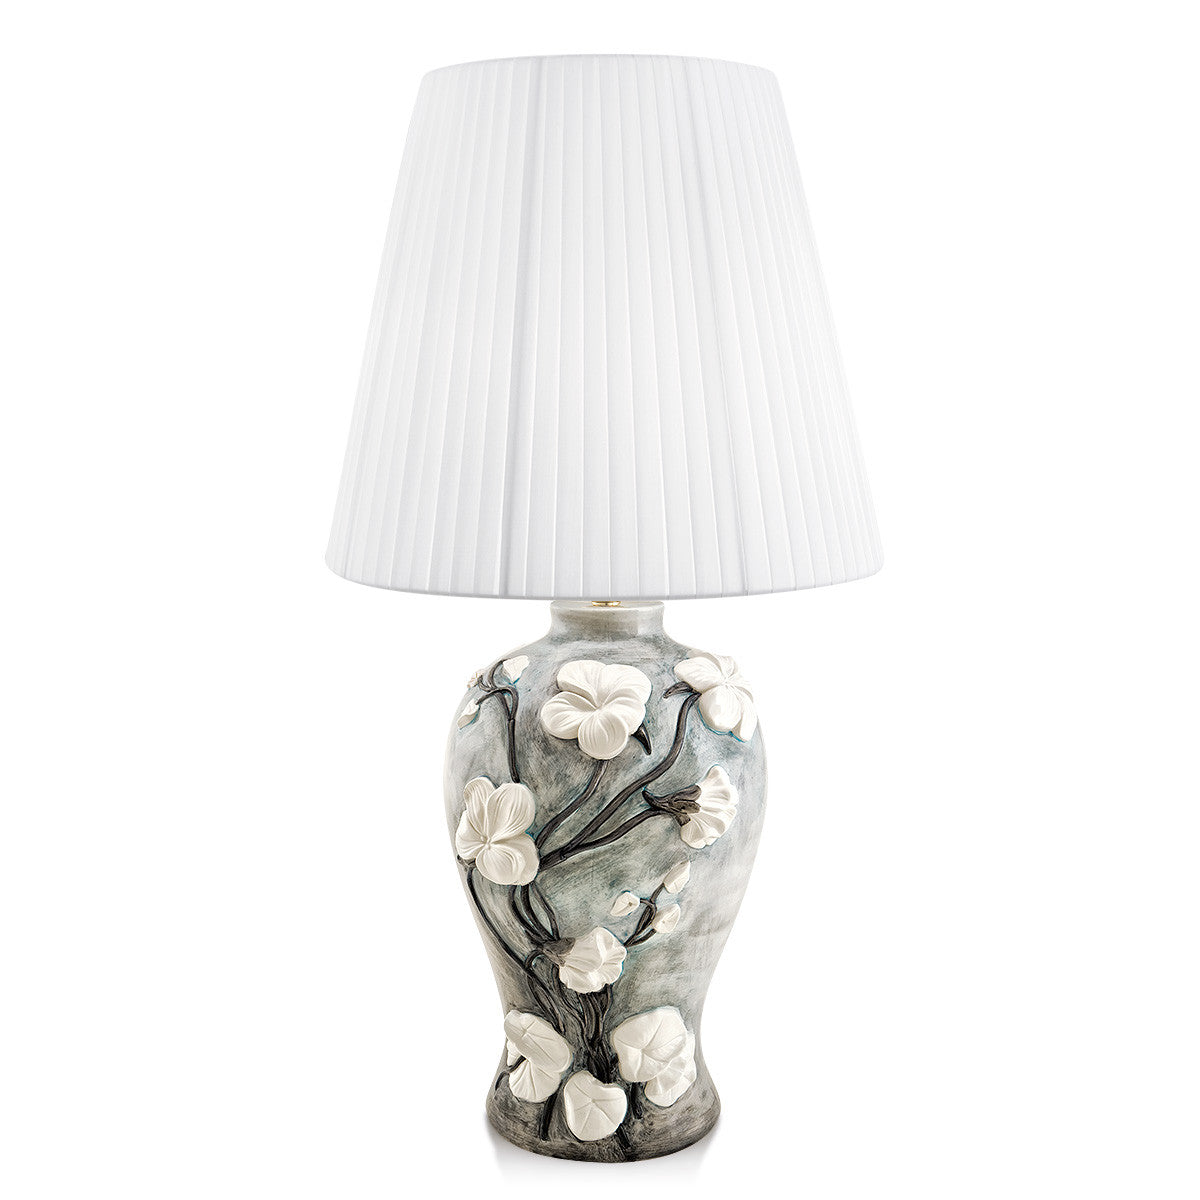 Ceramic table lamp with jasmine relief